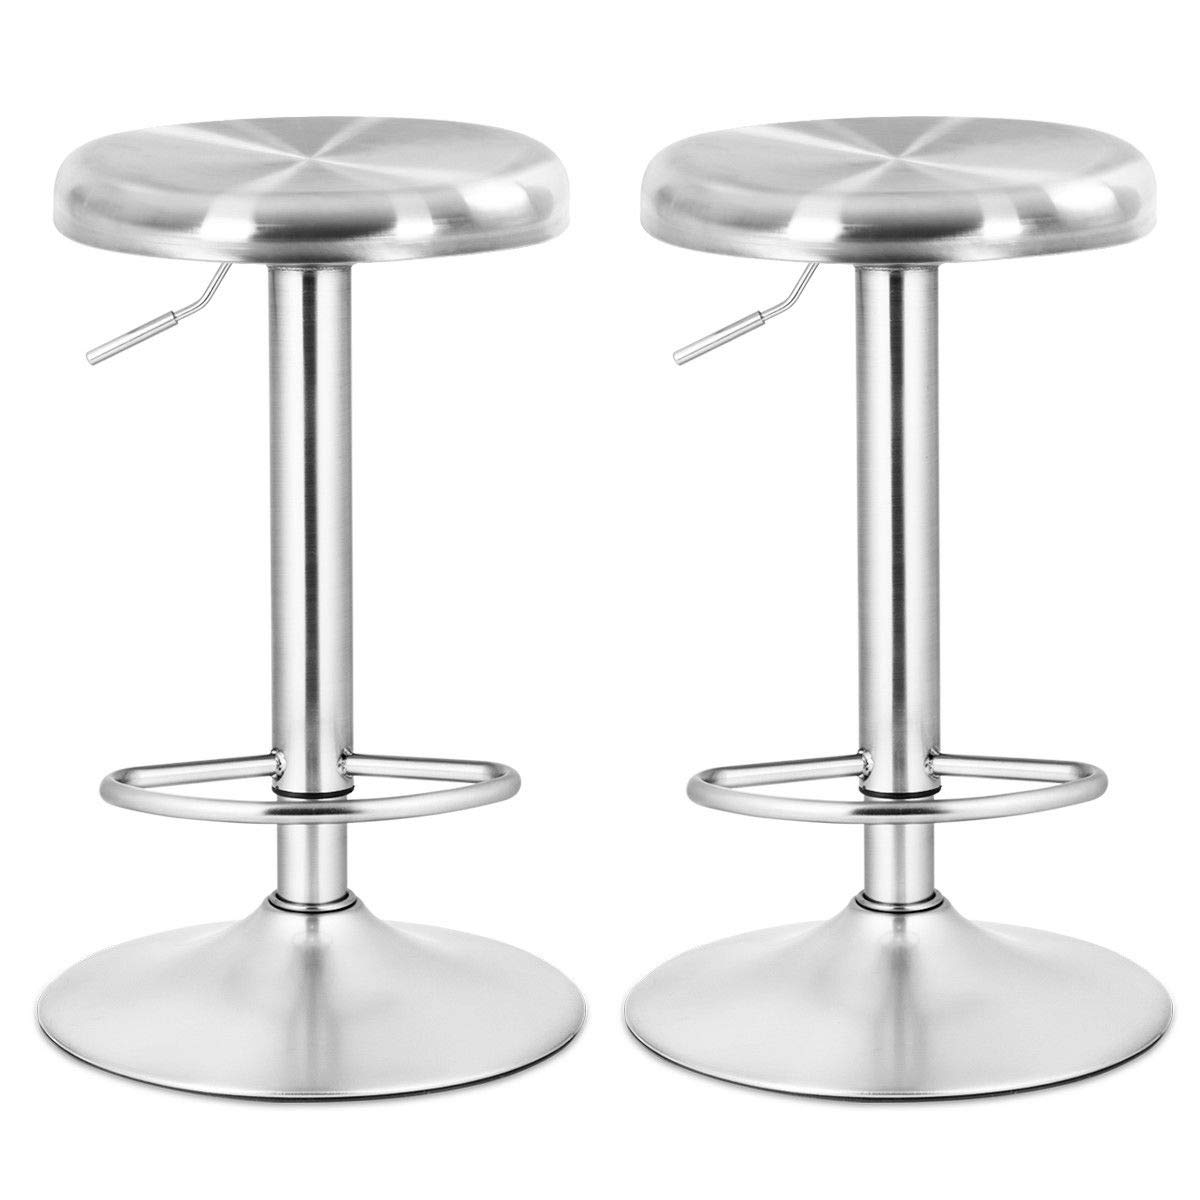 COSTWAY Bar Stool, Modern Swivel Adjustable Height Barstool, Stainless Steel Round Top Barstools with Footrest, for Pub Bistro Kitchen Dining Set of 2 by COSTWAY